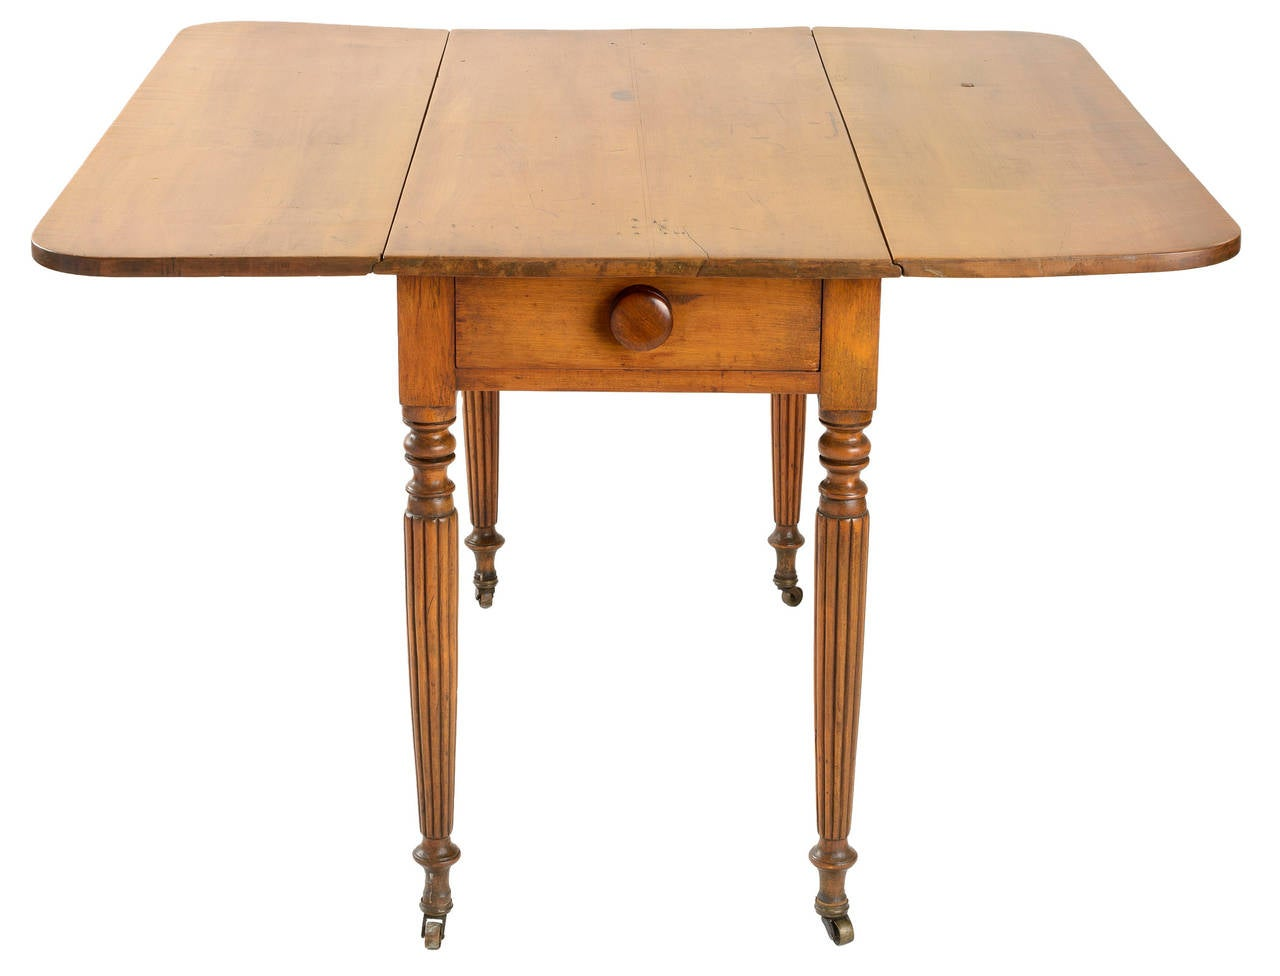 American country Sheraton pine gate leg table with two drop leaves. The top and leaves are one board each. The reeded legs are delicately tapered and have original brass casters. The drawer is dovetailed and has the original turned knob. The table's